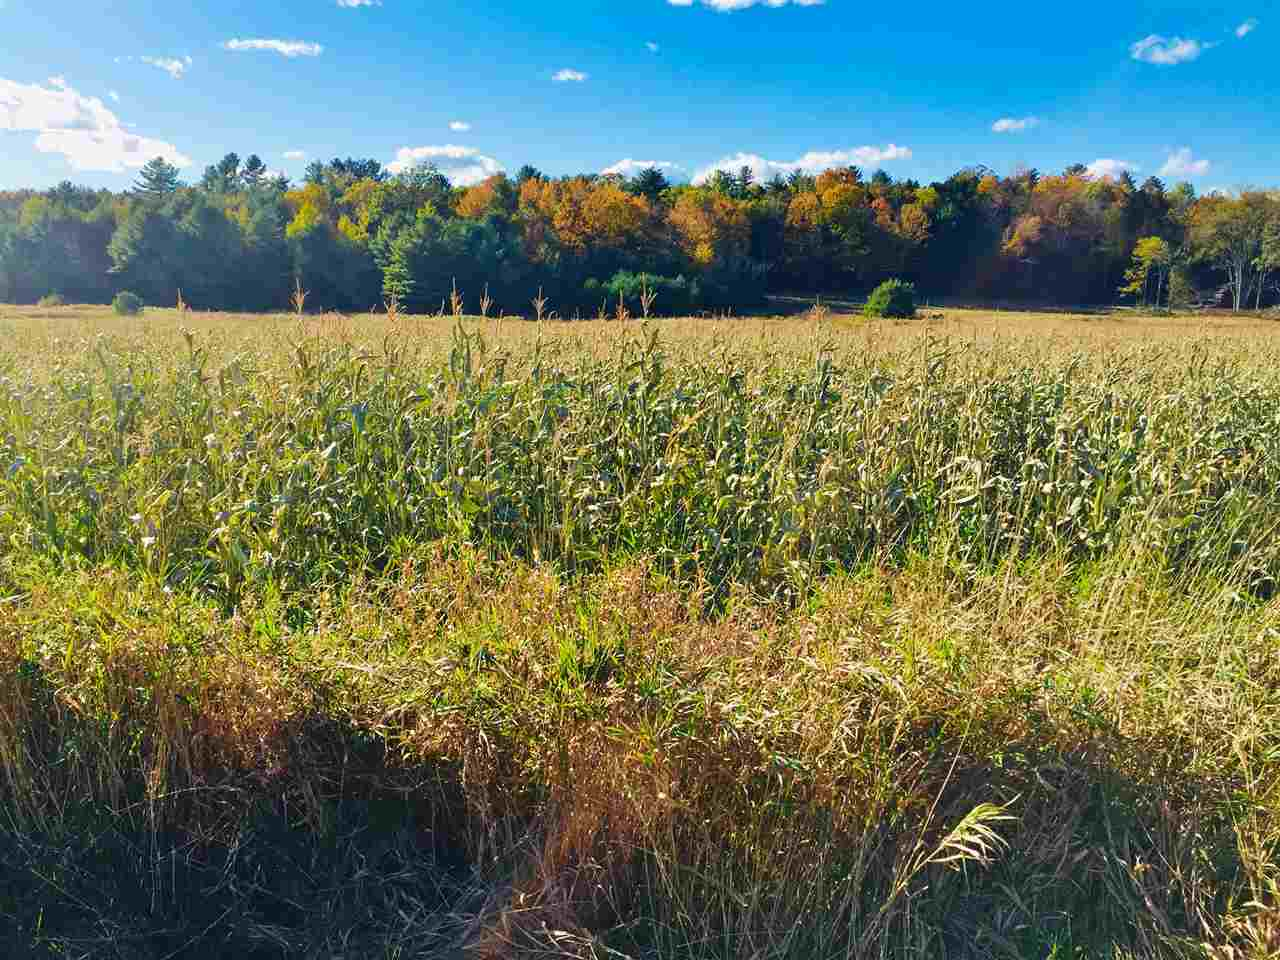 Beautiful 17.9 acre building lot in Shelburne.  Ready to build, Lot 2, part of a 2-lot private community, boasts level agriculture/pasture land.  Site will include a new gravel access road with underground electrical and internet service lines on site.   State approved waste water permit (WW-4-2651-1) in place.  This parcel is close to Shelburne Pond (fishing, skating, boating), walking trails and the VAST trail.  Easy access to Rt. 116, Burlington International Airport, UVM Medical Center and CVU.  Other building lots also available.